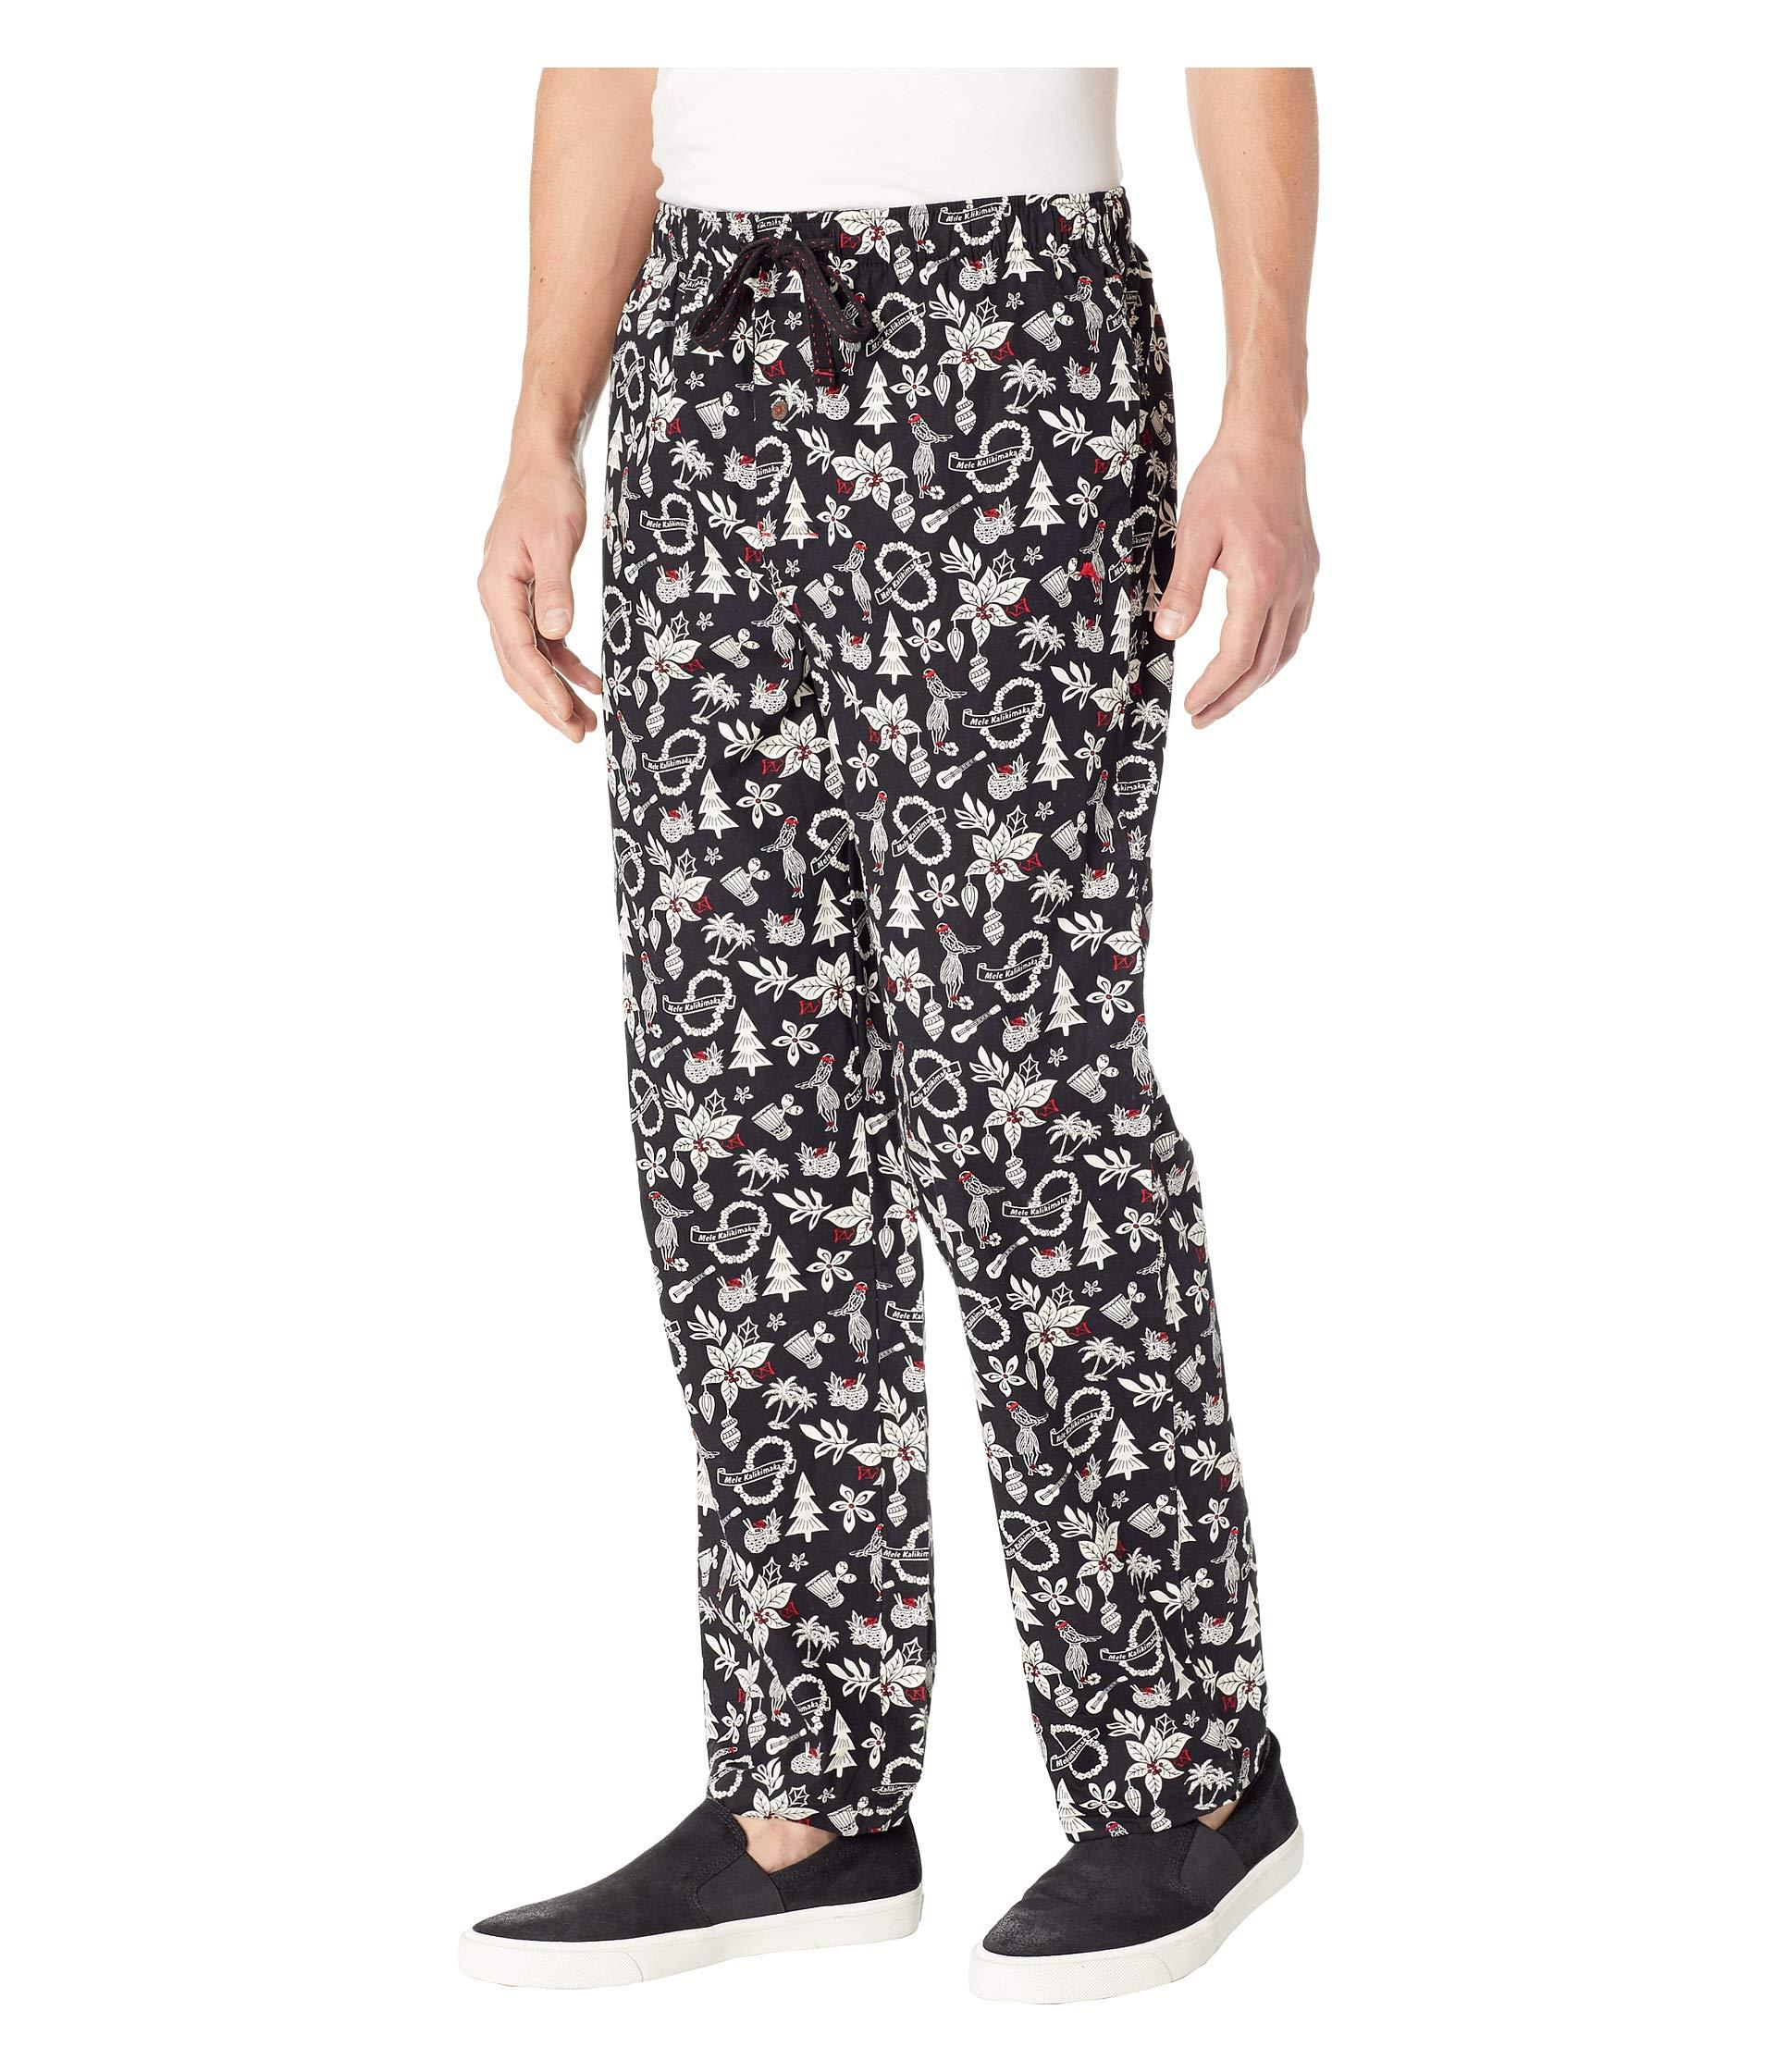 467a27cb8261 Lyst - Tommy Bahama Island Washed Cotton Woven Pants in Black for Men -  Save 41%